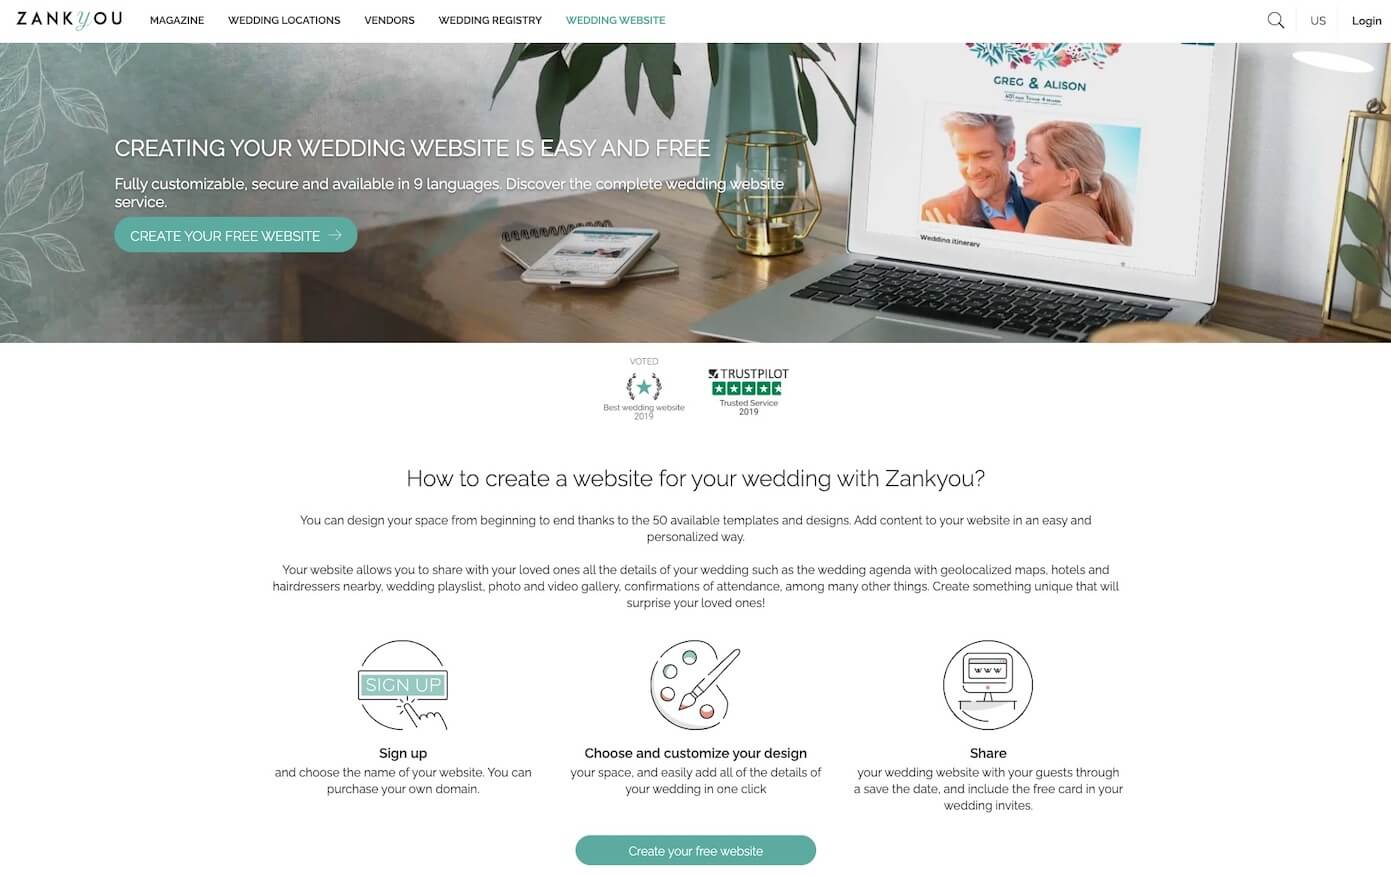 zank you wedding website